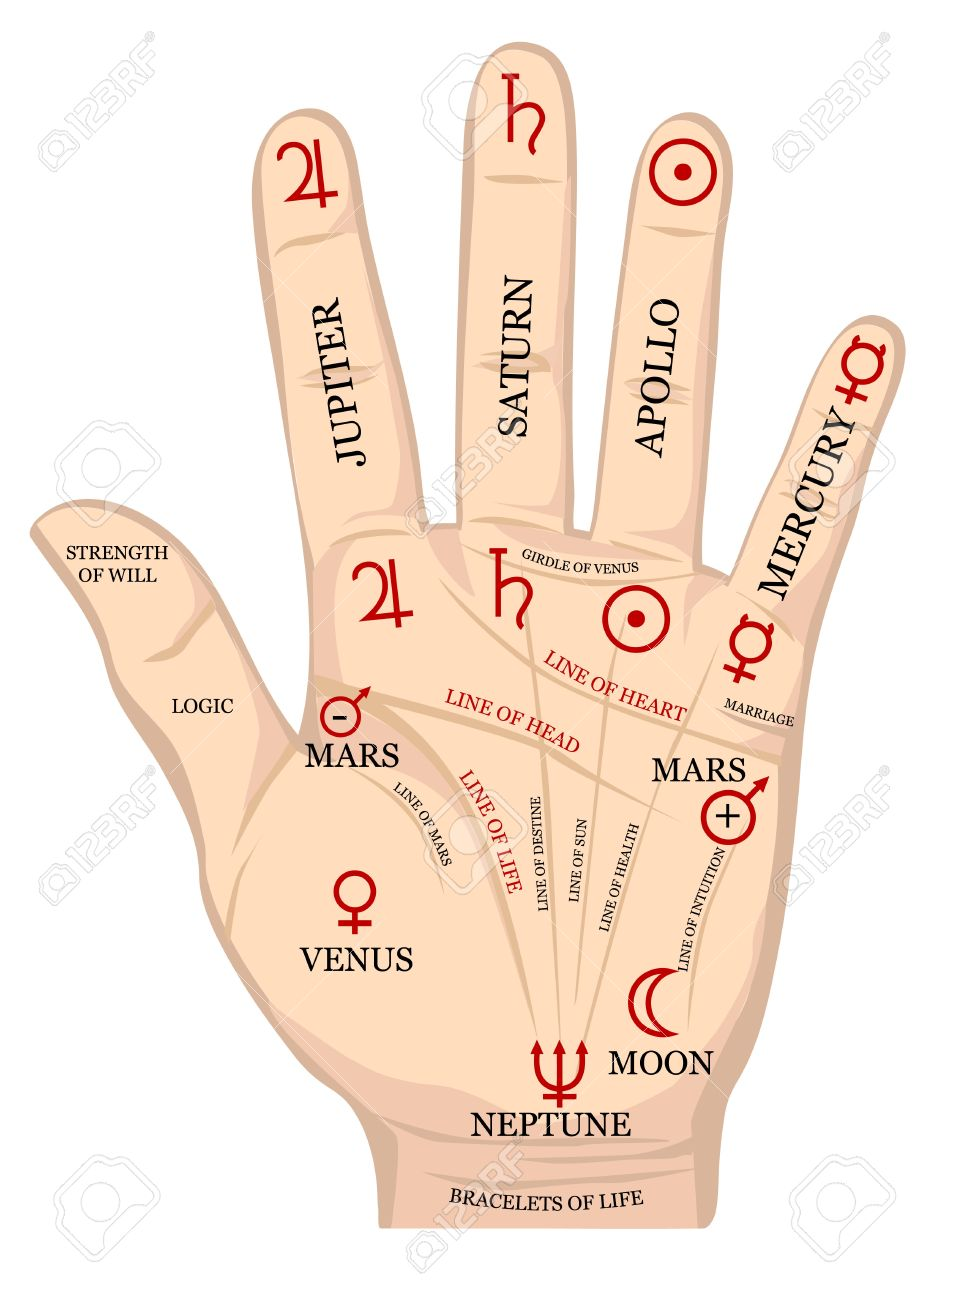 184 Palmistry Stock Vector Illustration And Royalty Free Palmistry.